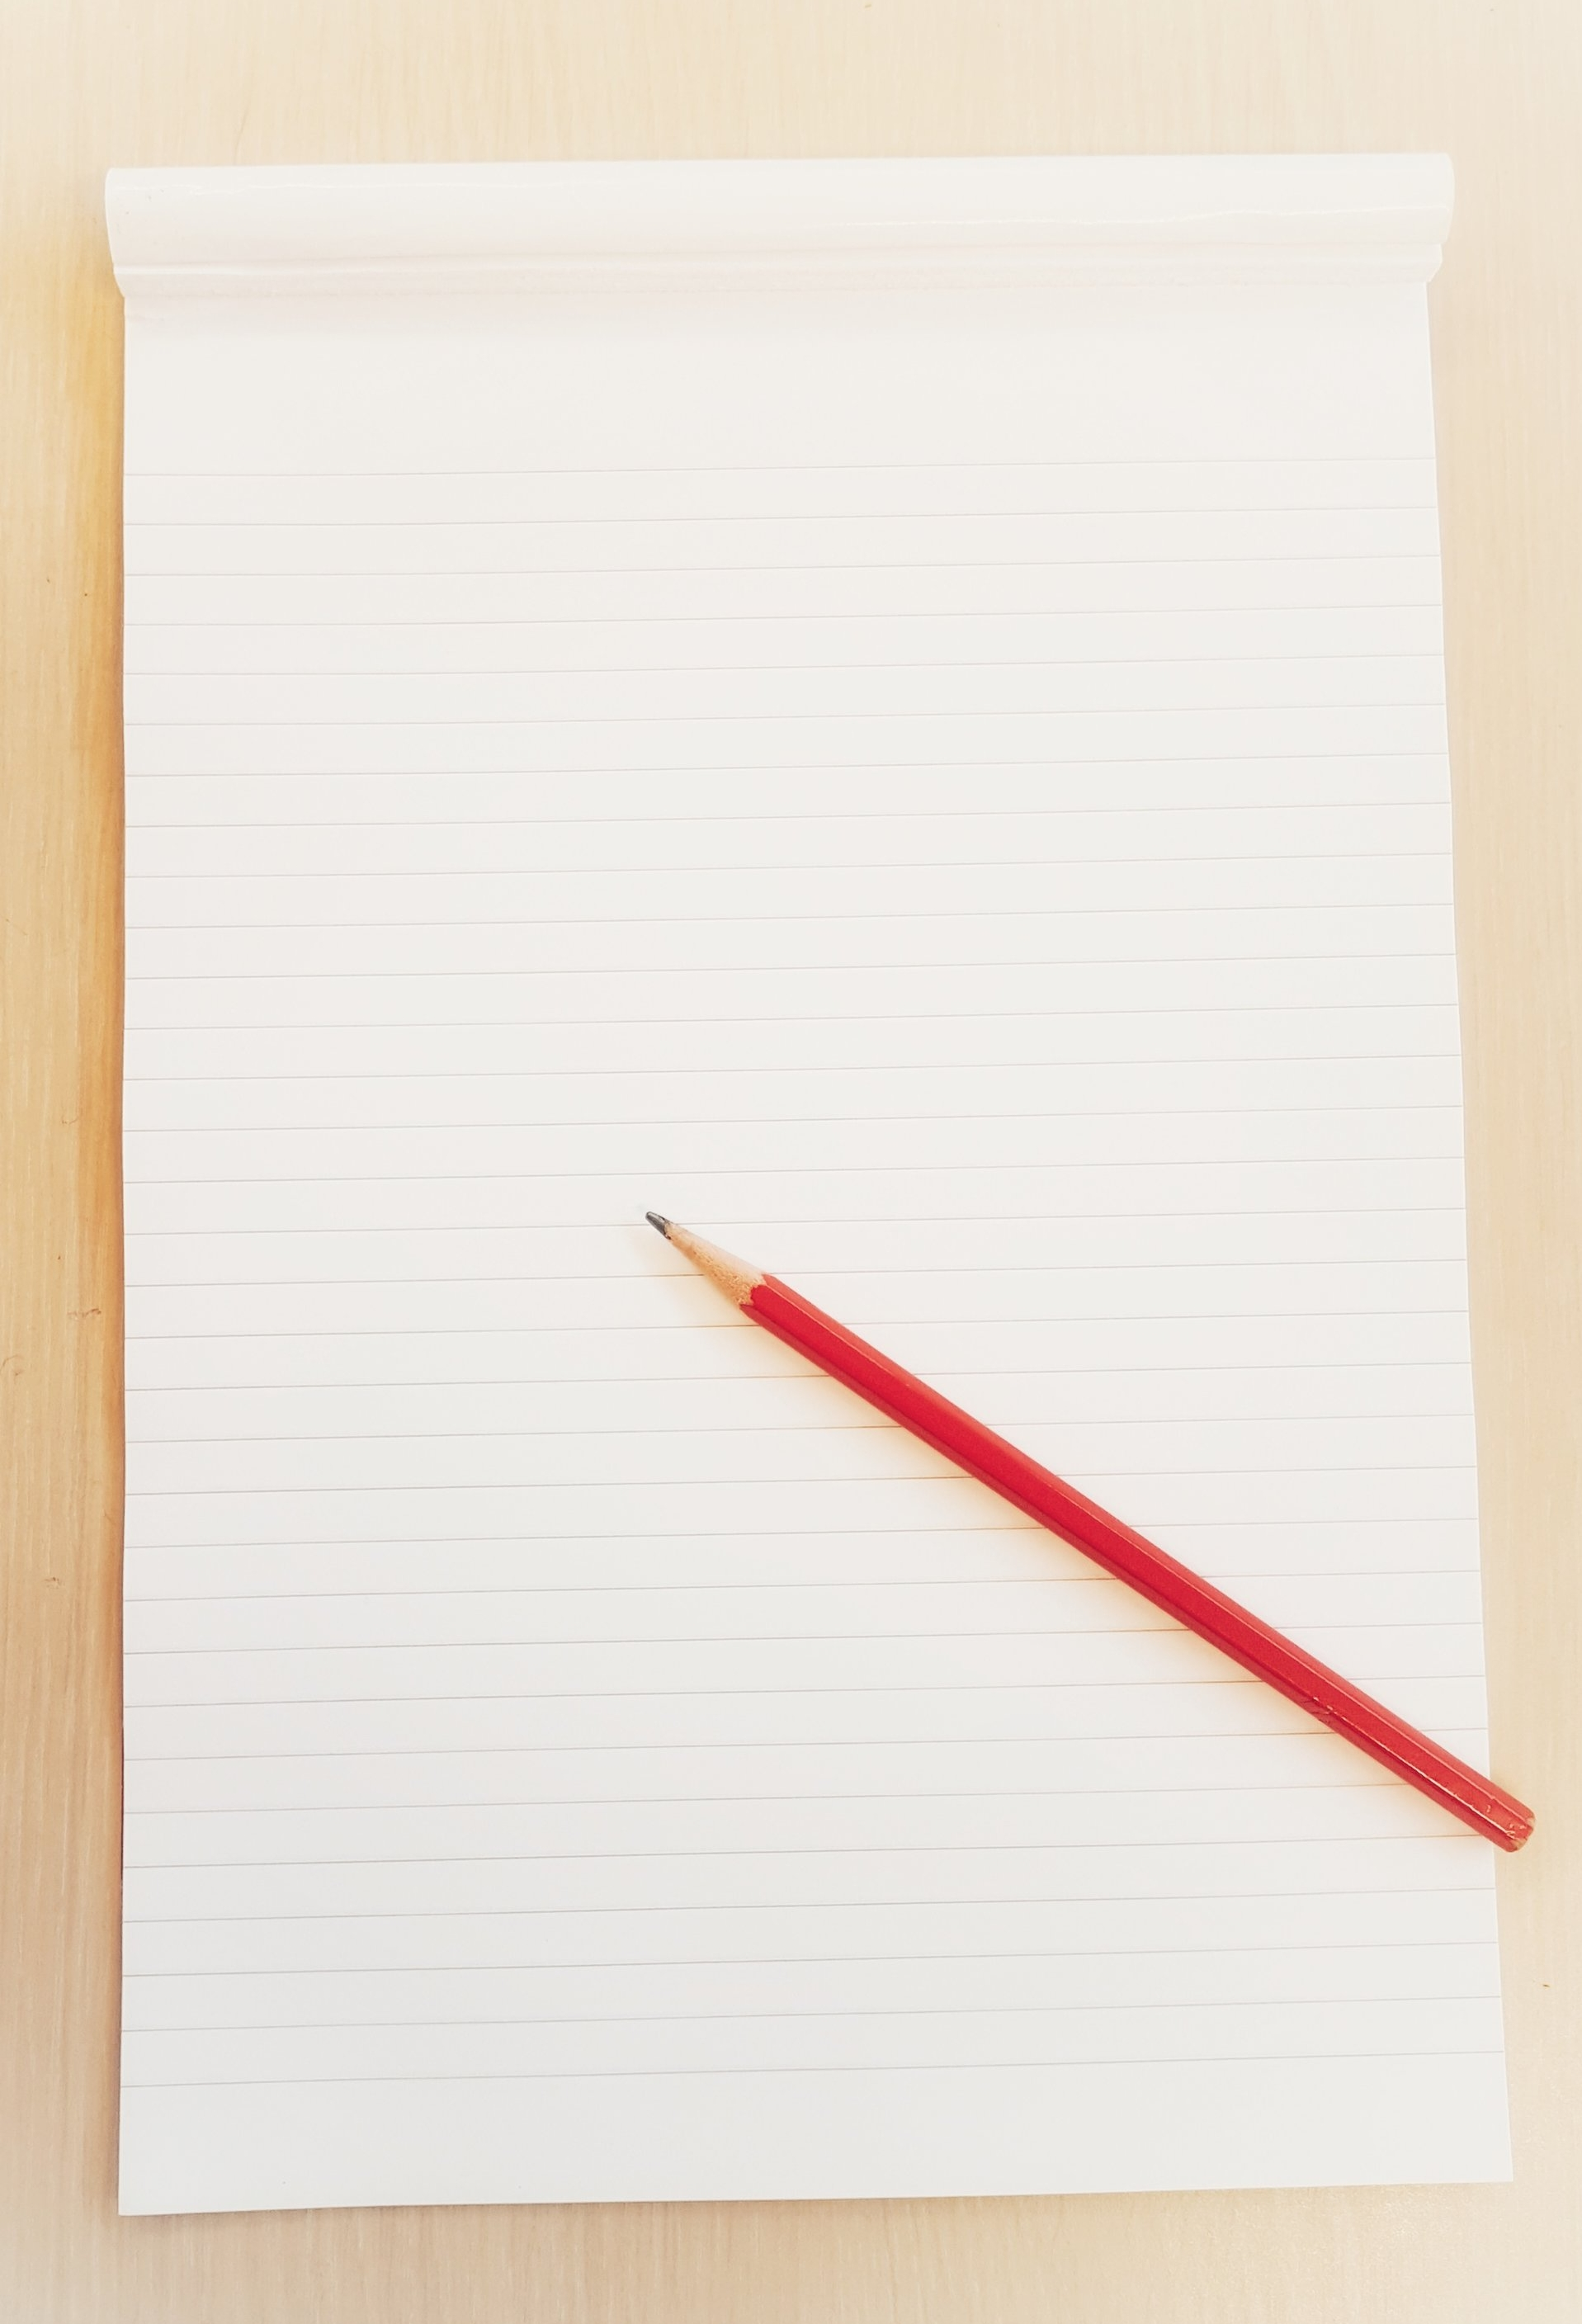 All good ideas start with a blank piece of paper...